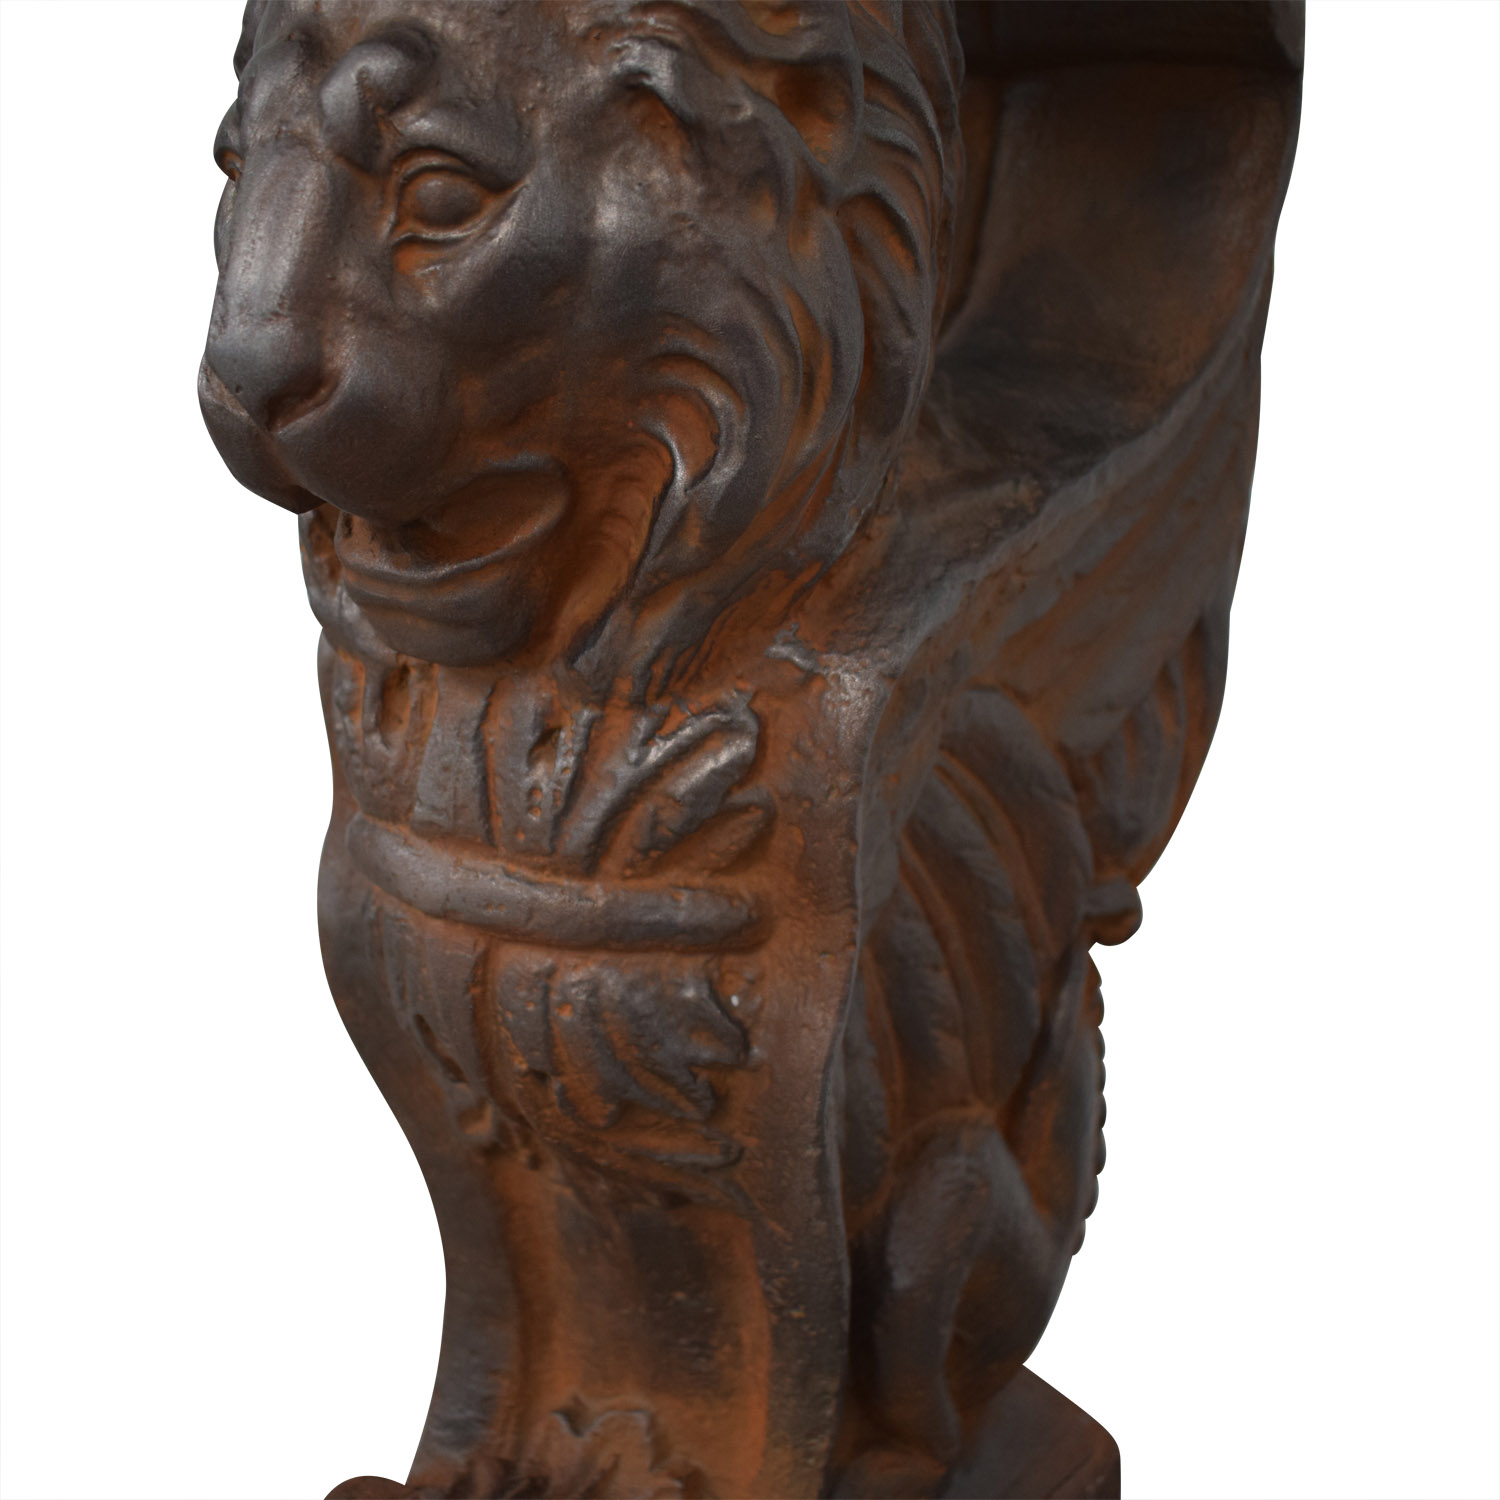 Glass Console Table with Lion Sculpture Pedestal Bases for sale